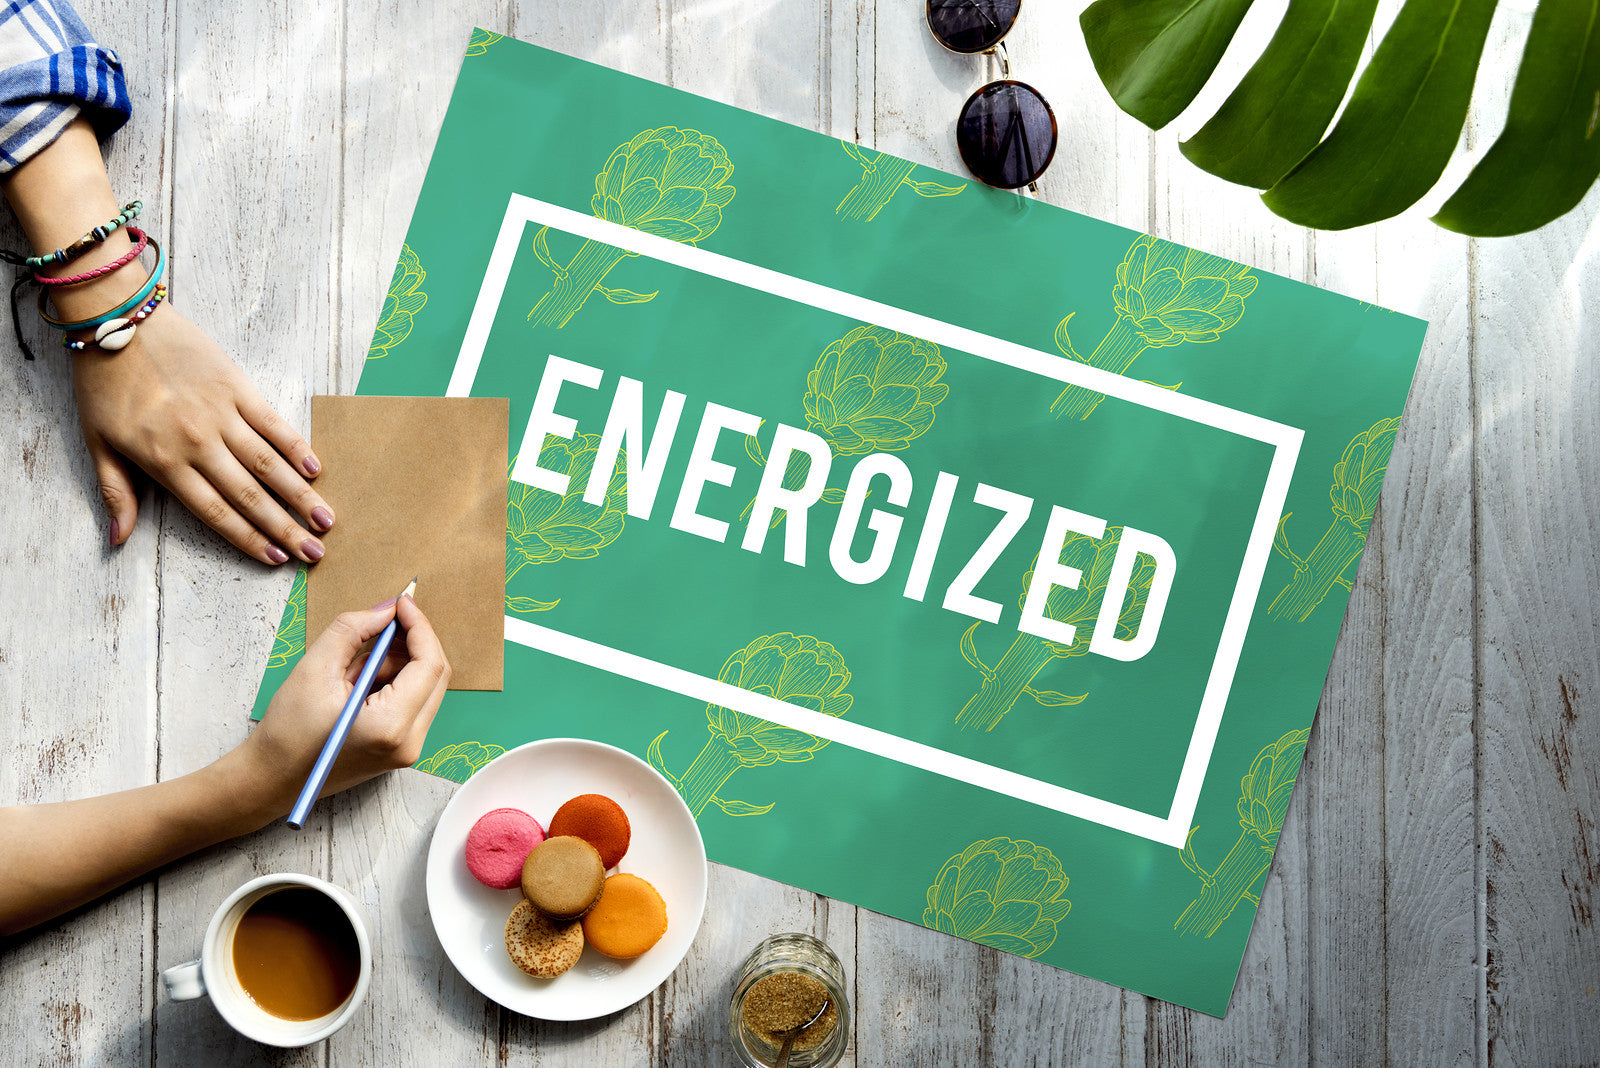 10 Natural and Healthy Foods That Will Keep You Energized!